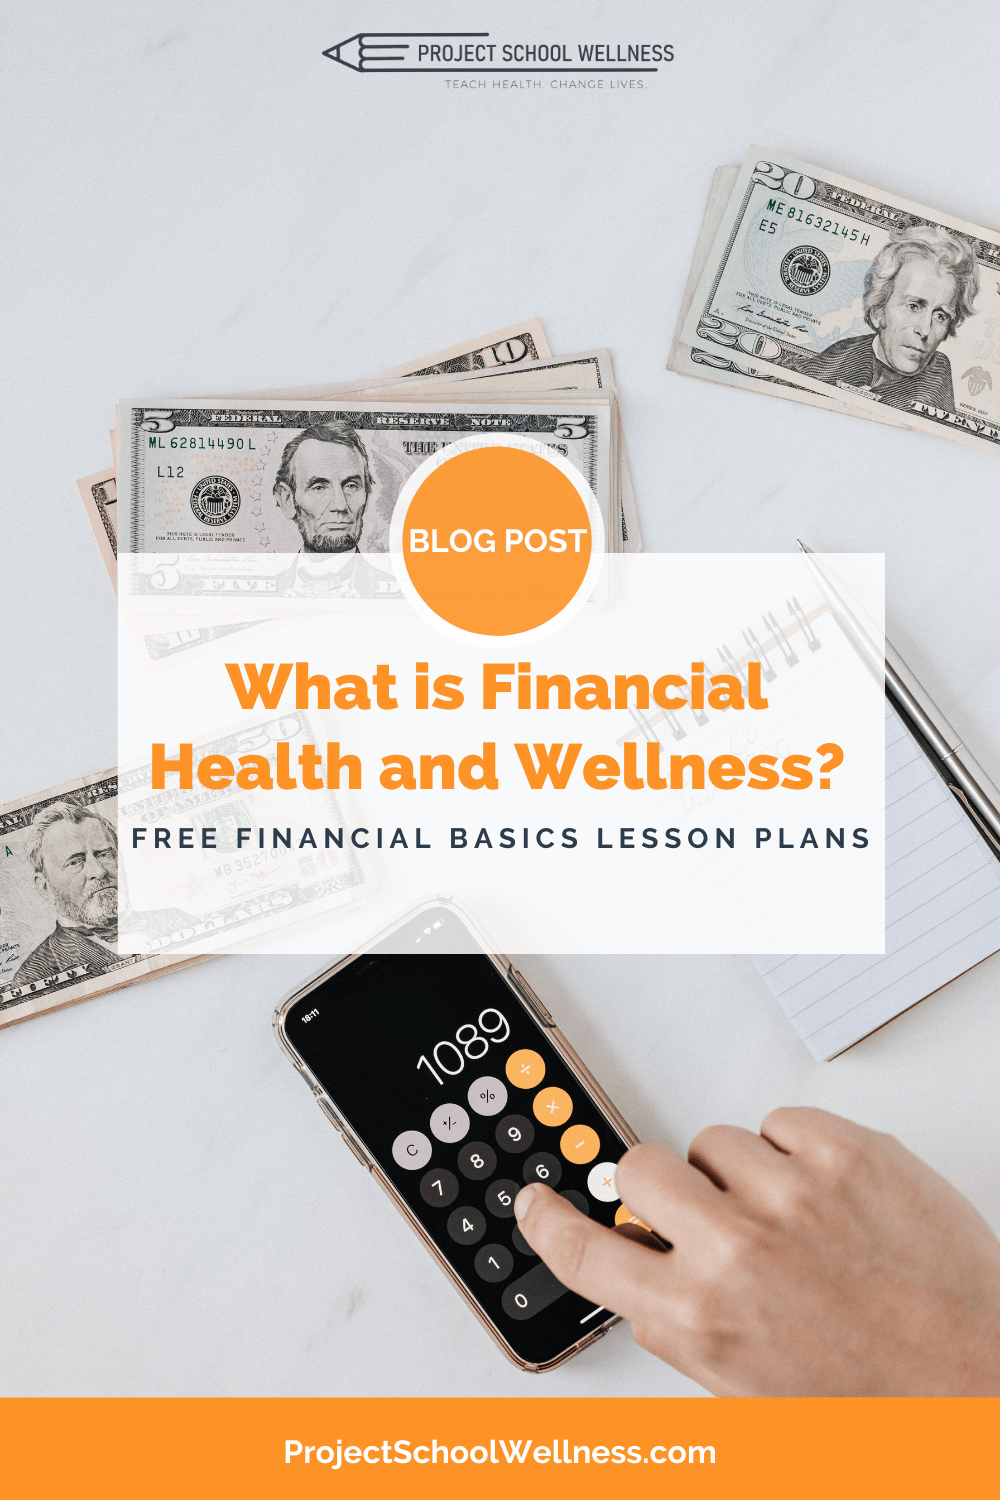 What is Financial Health, a look at what financial health and wellness is and how to teach it in your classroom as part of your comprehensive, skills-based health education program